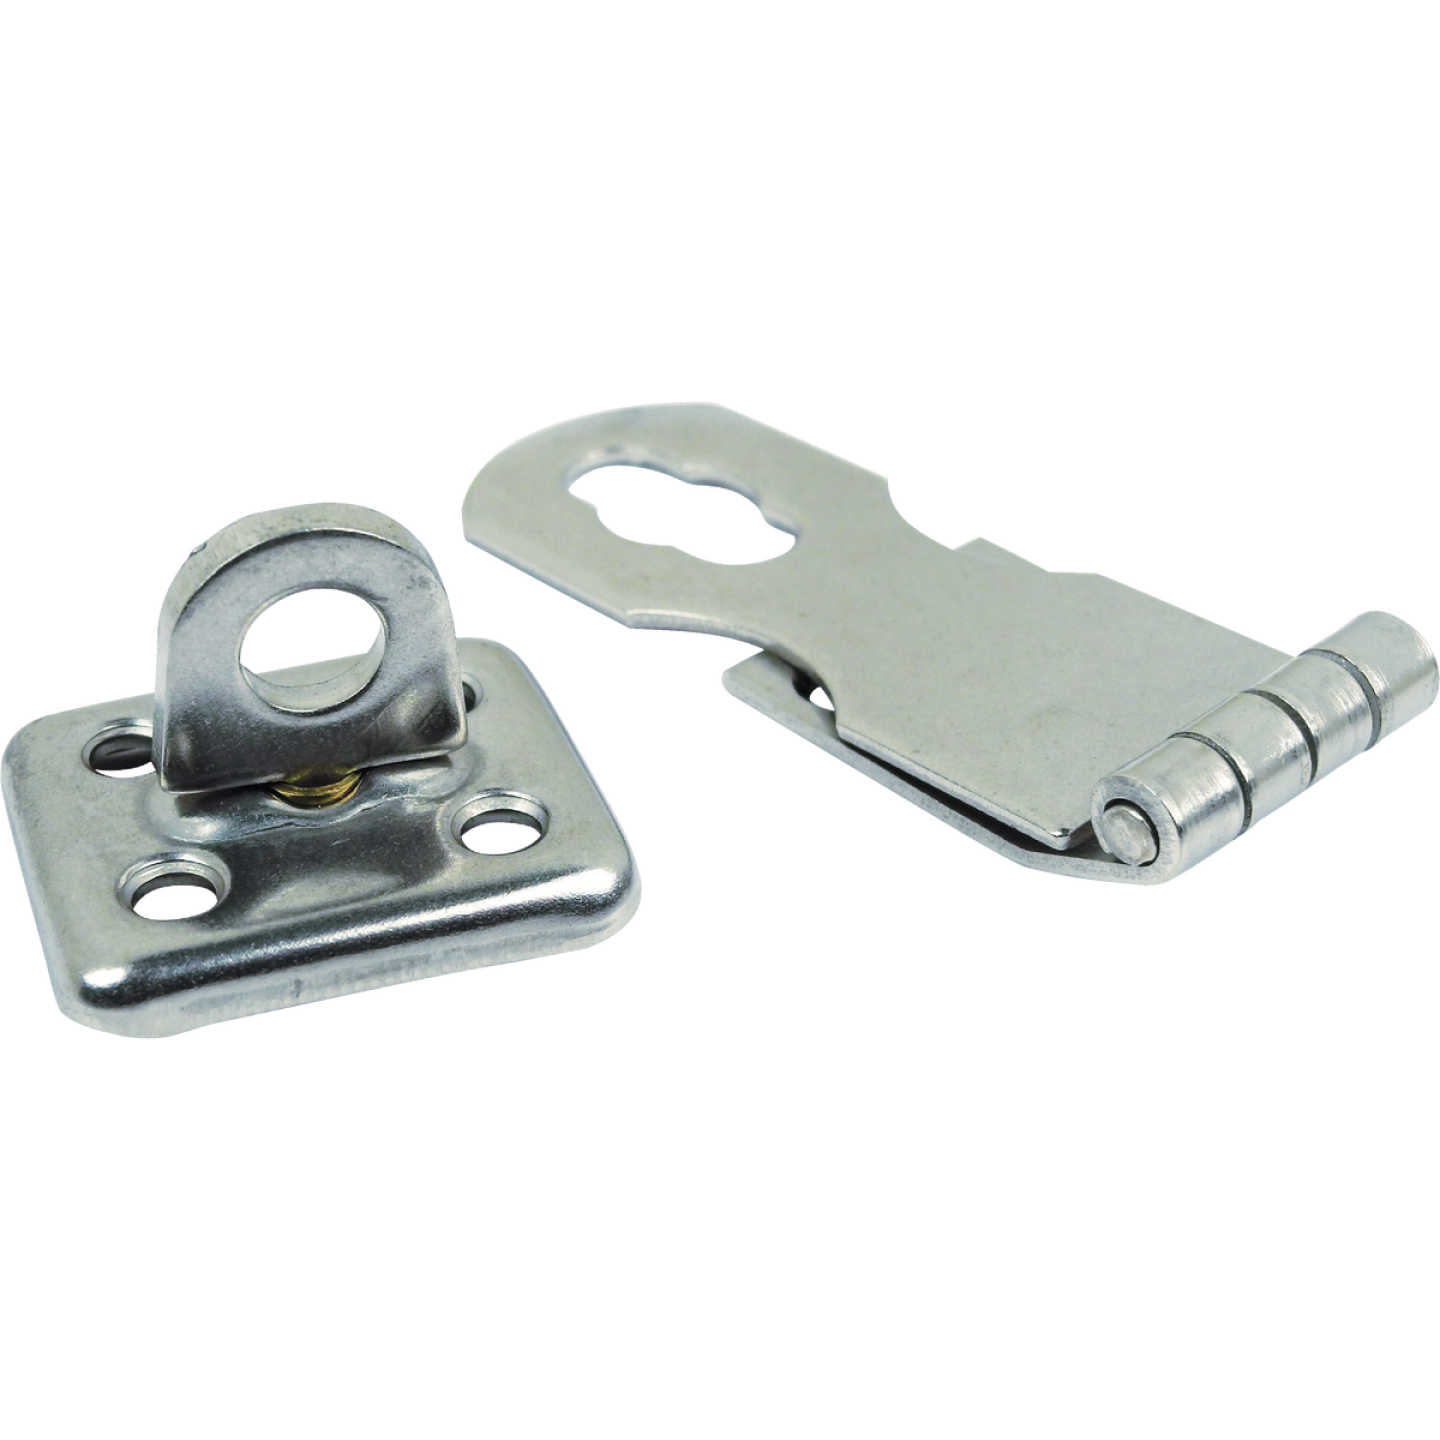 Seachoice 1 In. x 2-3/4 In. Polished Stainless Steel Swivel Eye Safety Hasp Image 1